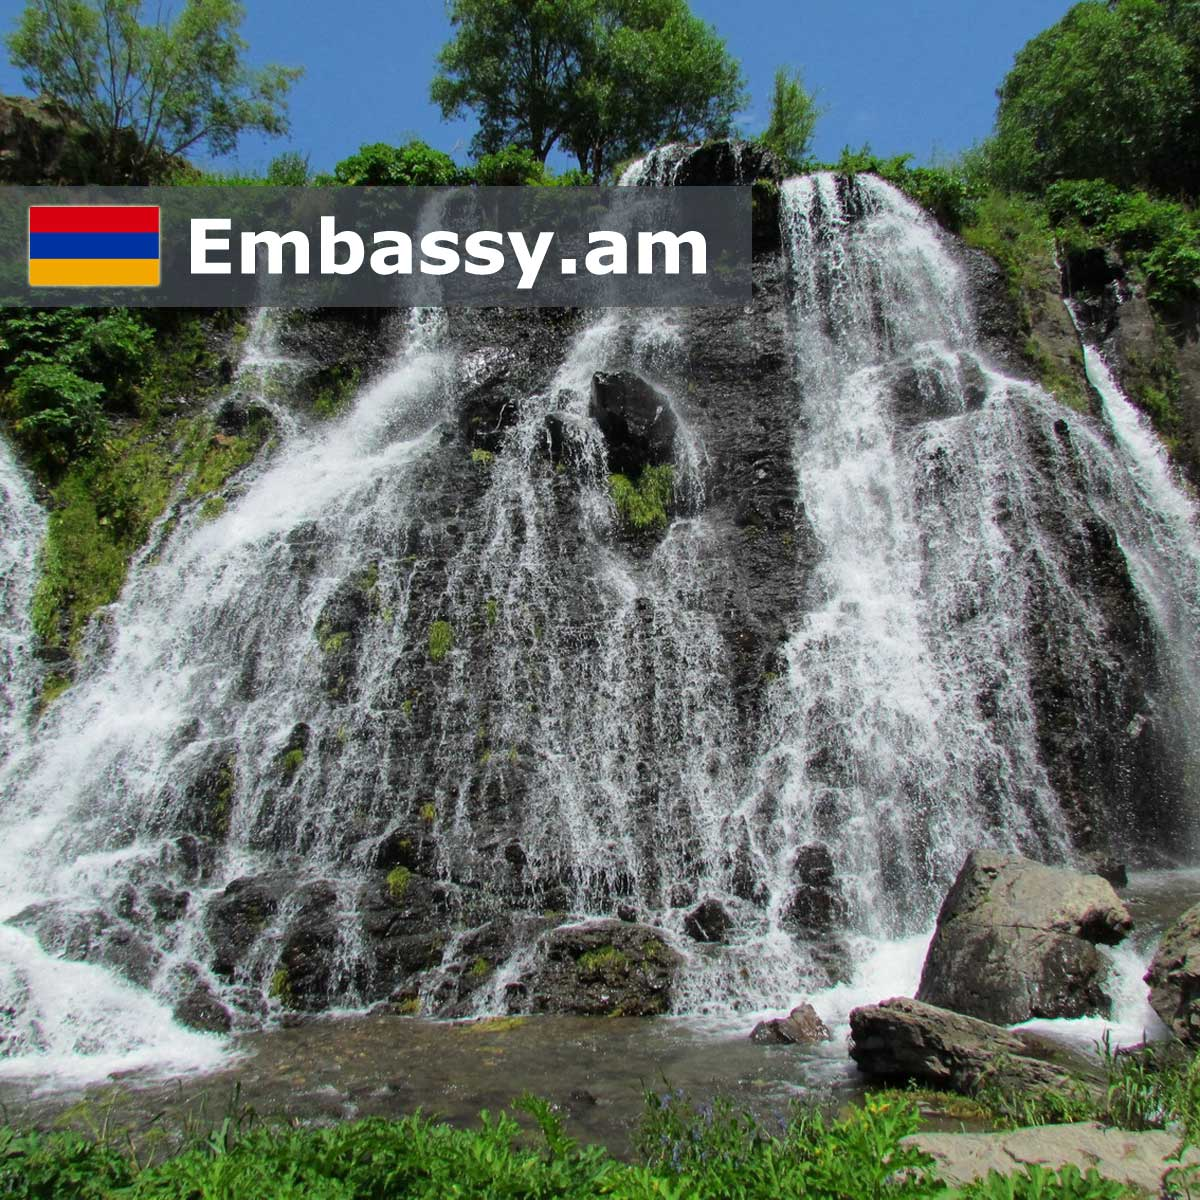 Jermuk - Hotels in Armenia - Embassy.am